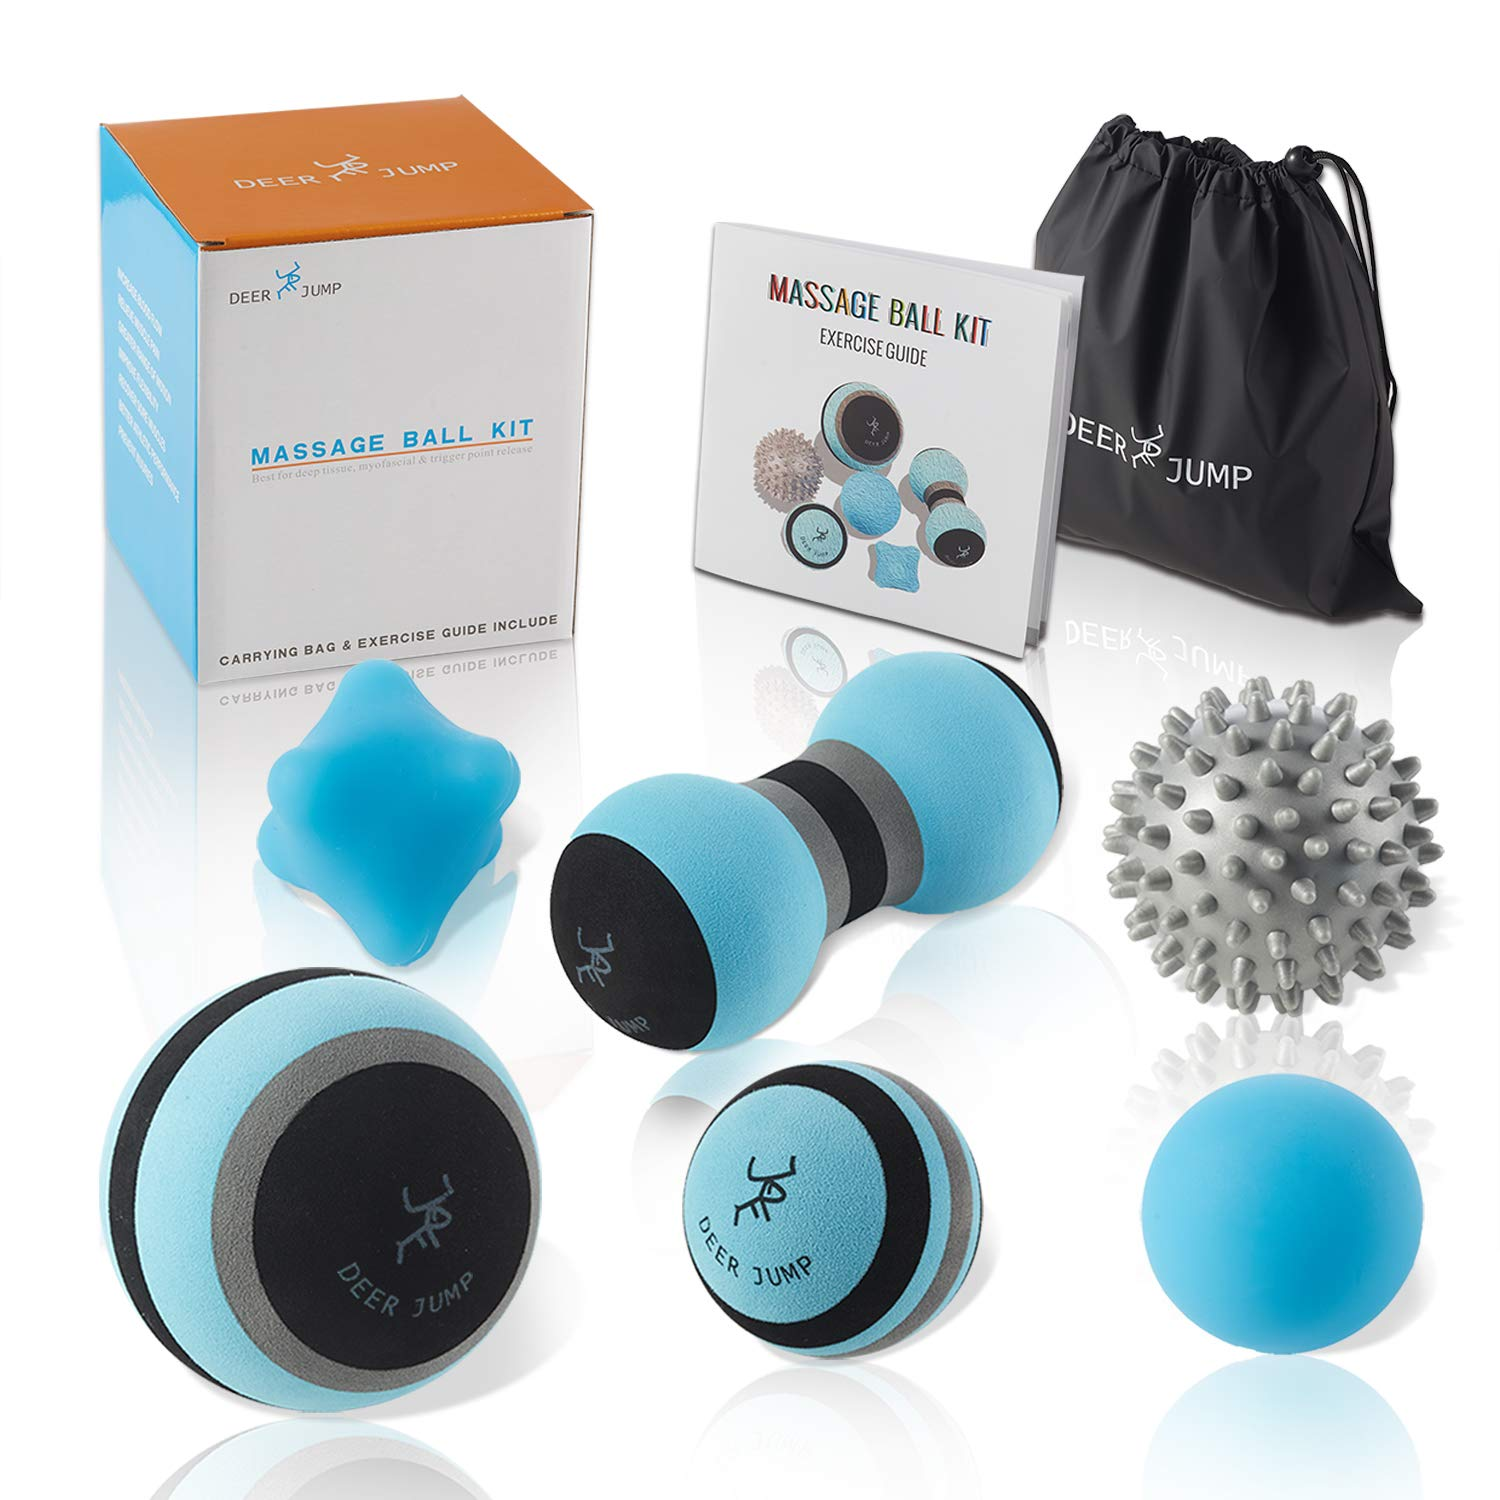 Massage Ball Kit